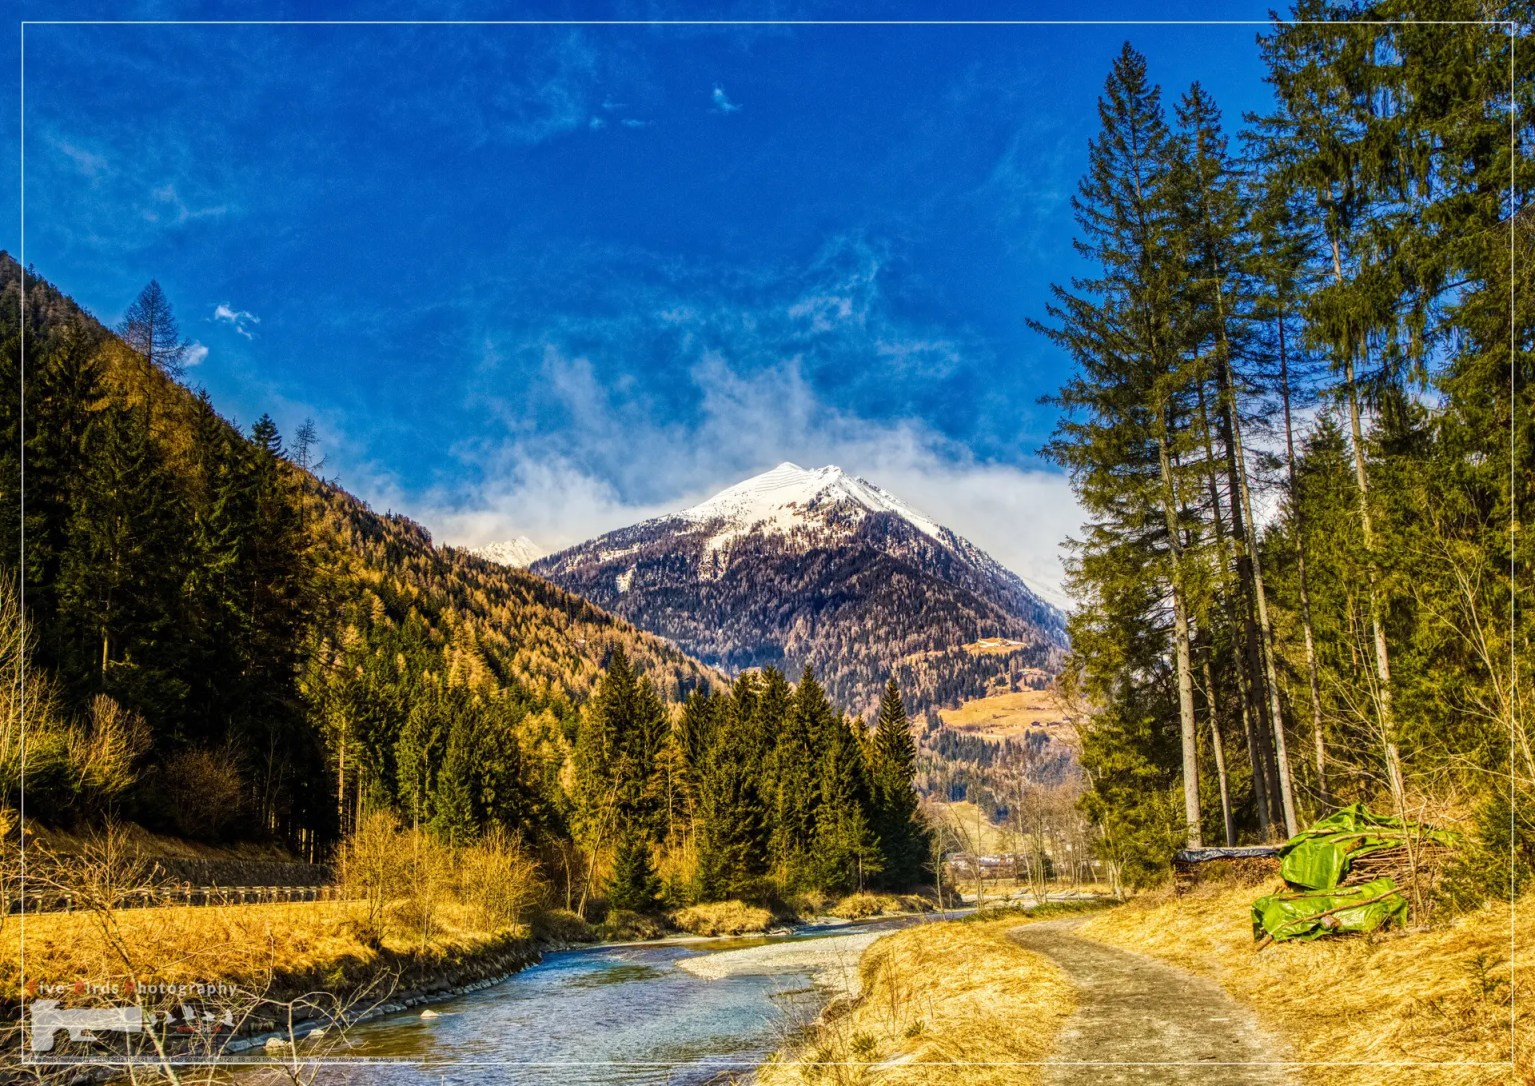 Landscape shot of the Alps between St. Johann and Sand in Taufers in Tirol, Italy